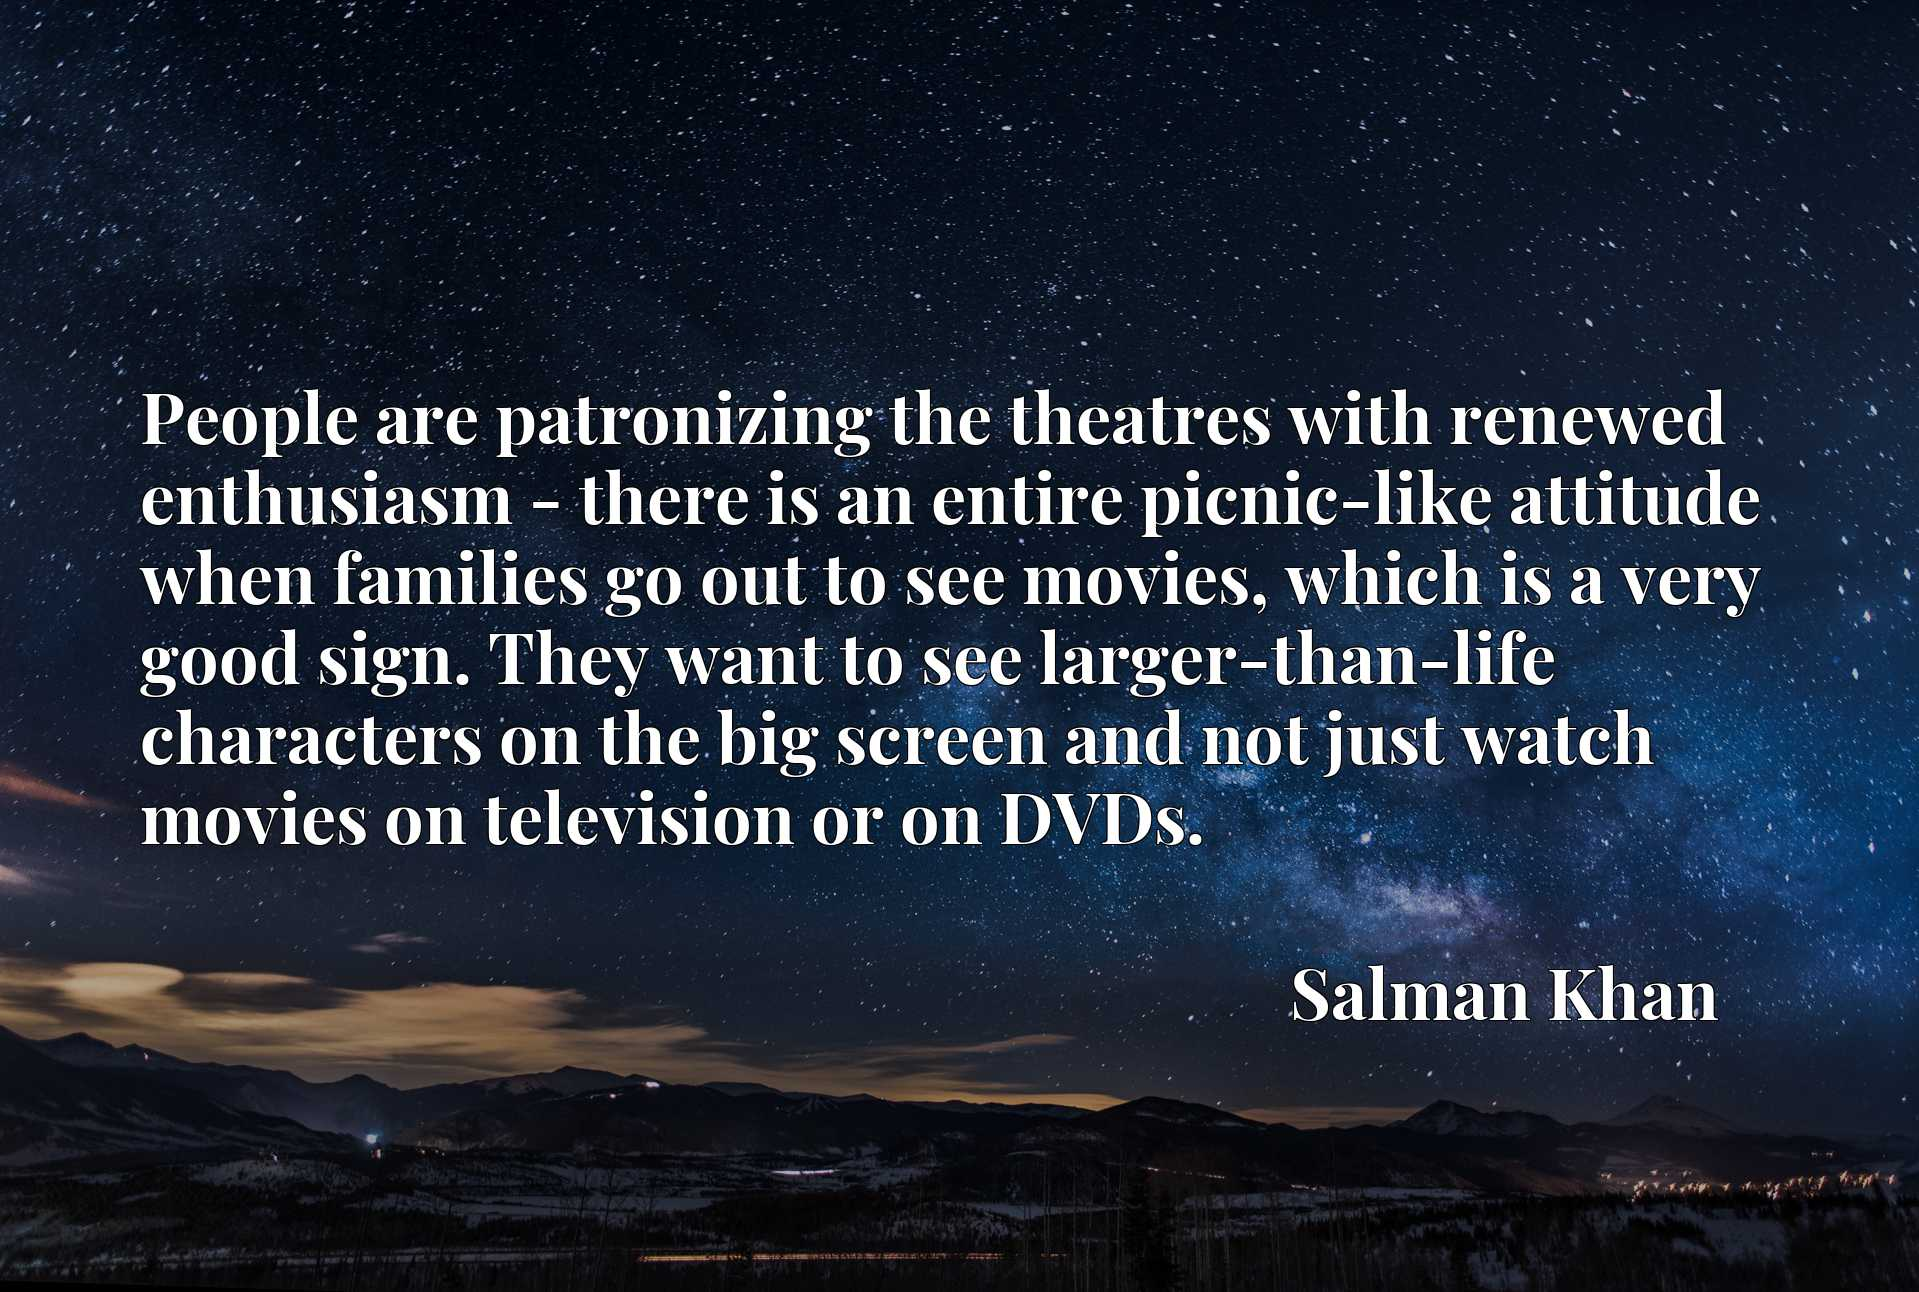 People are patronizing the theatres with renewed enthusiasm - there is an entire picnic-like attitude when families go out to see movies, which is a very good sign. They want to see larger-than-life characters on the big screen and not just watch movies on television or on DVDs.